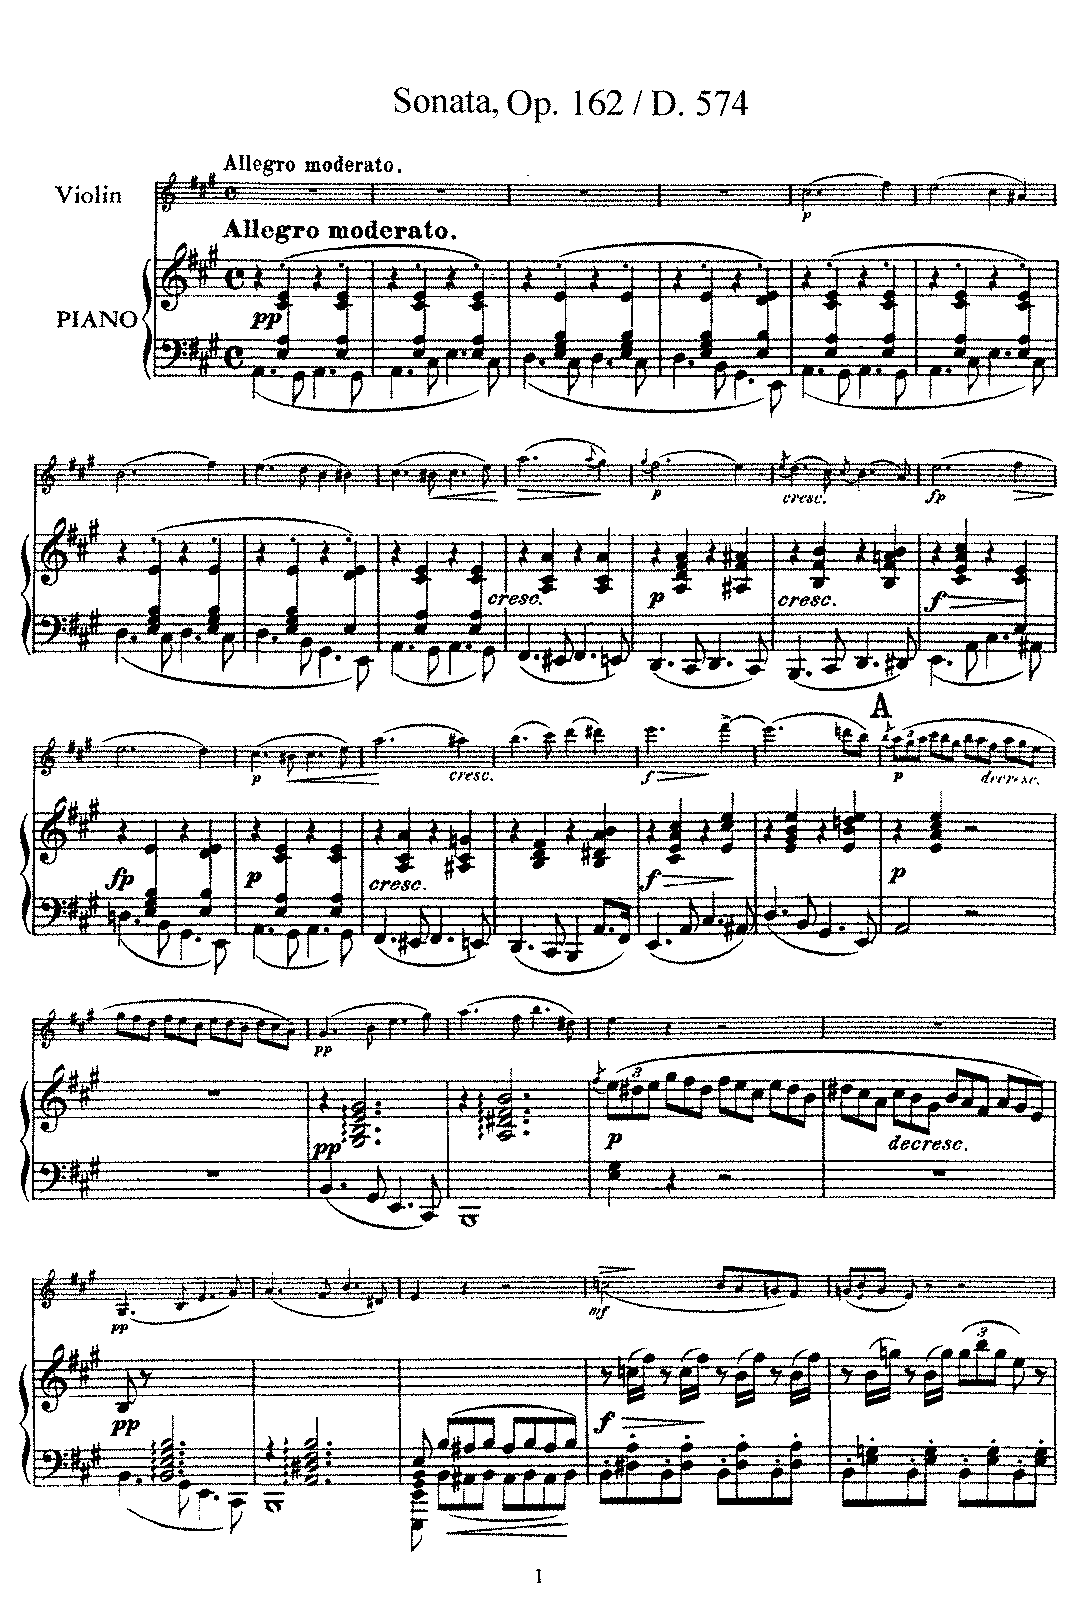 Schubert - D.574 - Violin Sonata in A Major (Op.162).pdf